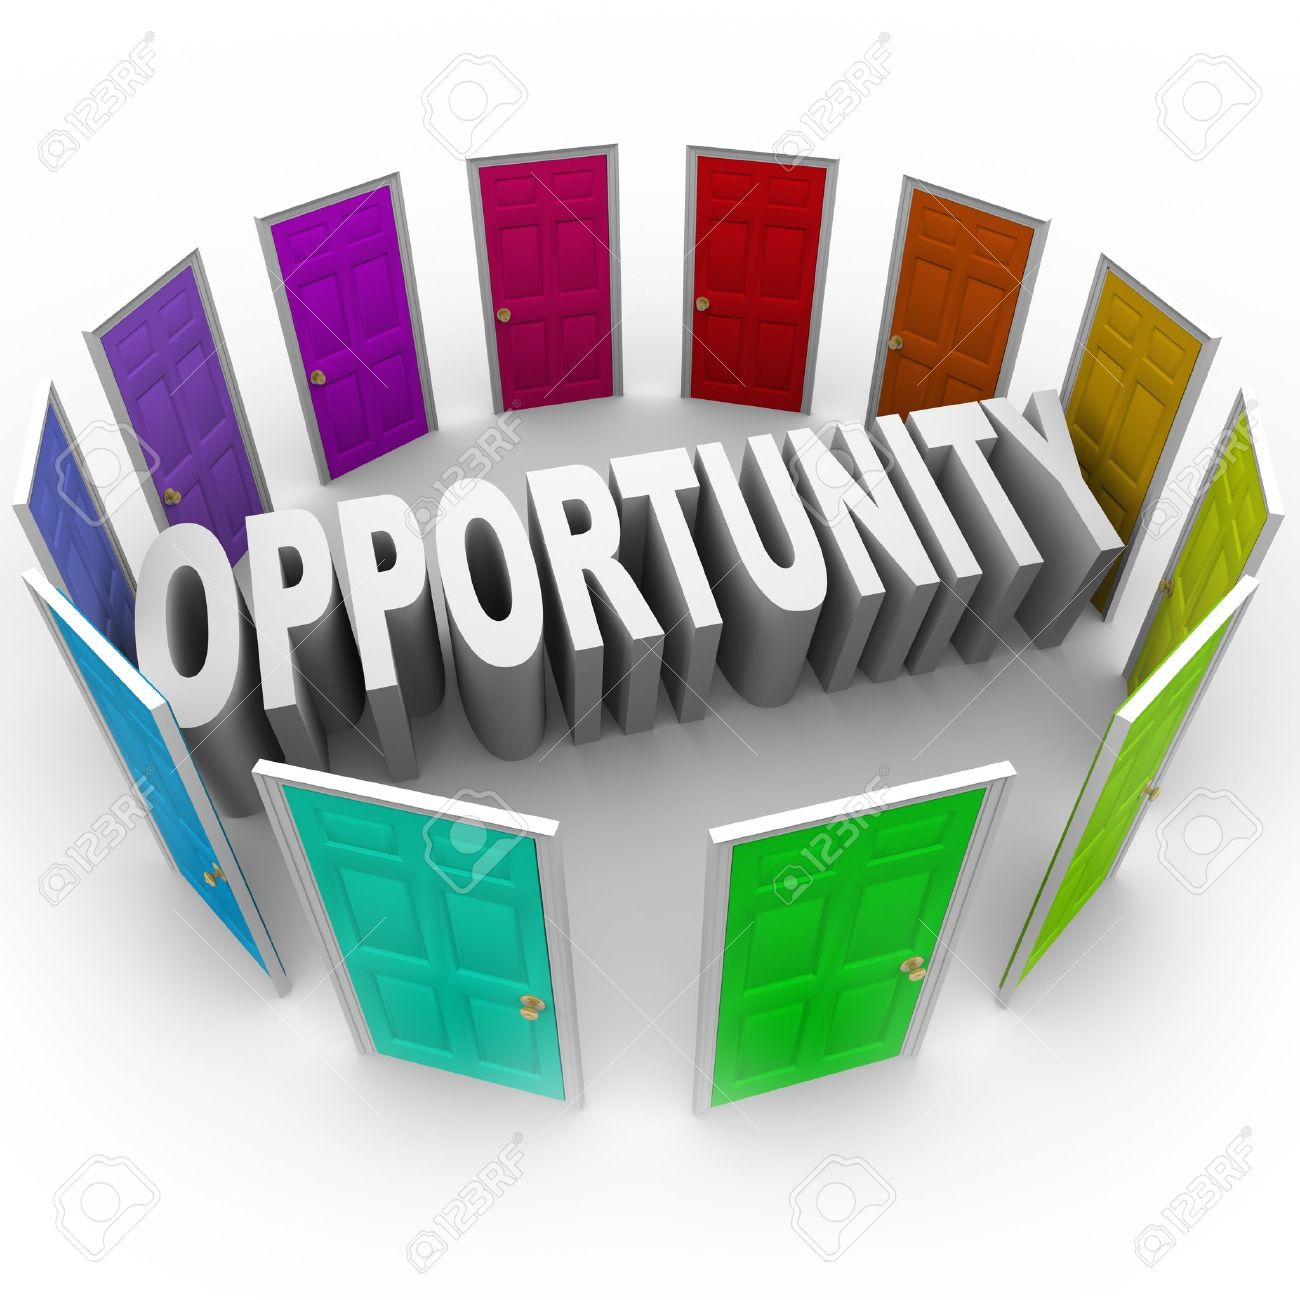 your new job stock photos images royalty your new job images your new job the word opportunity in 3d letters surrounded by doors of different colors